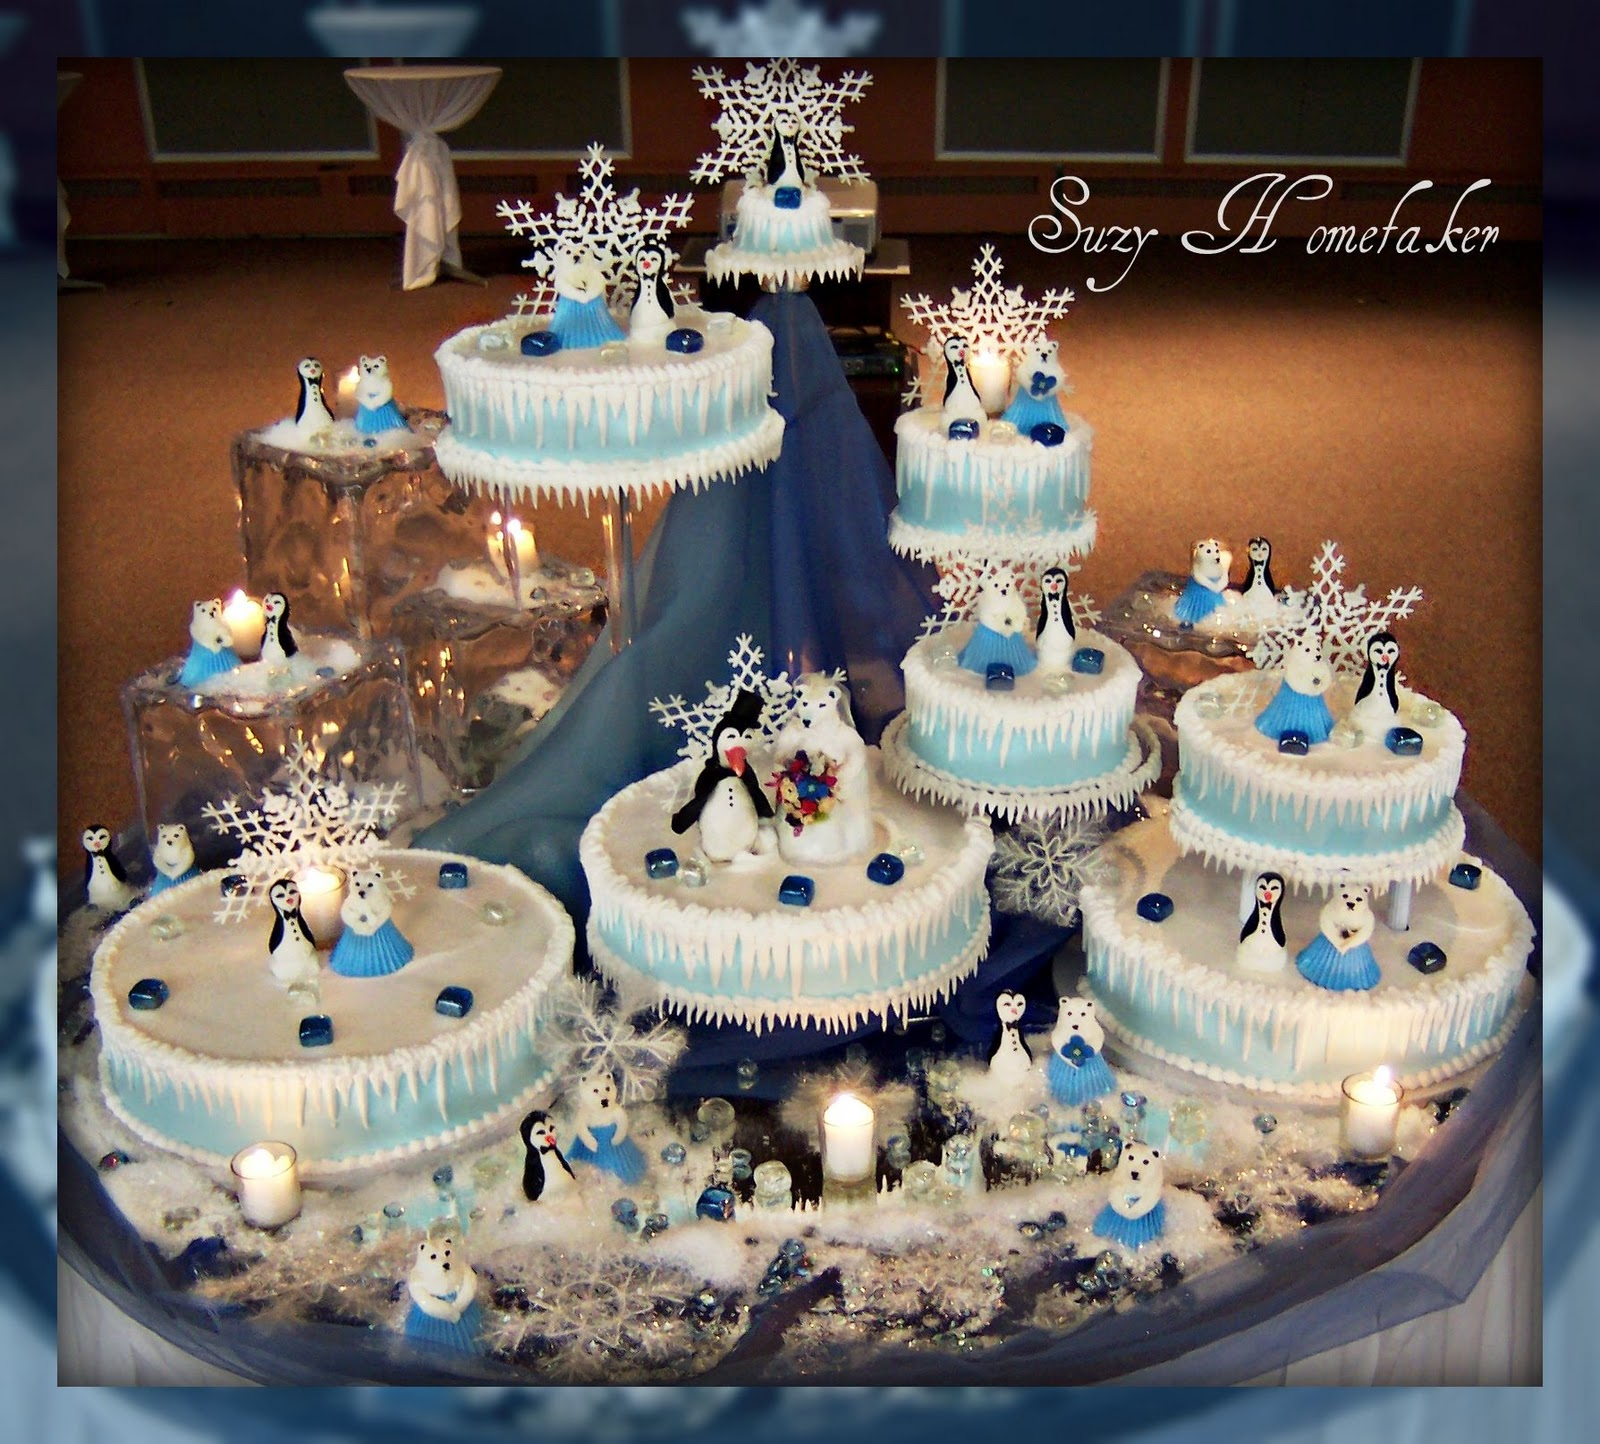 Suzy Homefaker: POLAR BEAR WEDDING CAKE